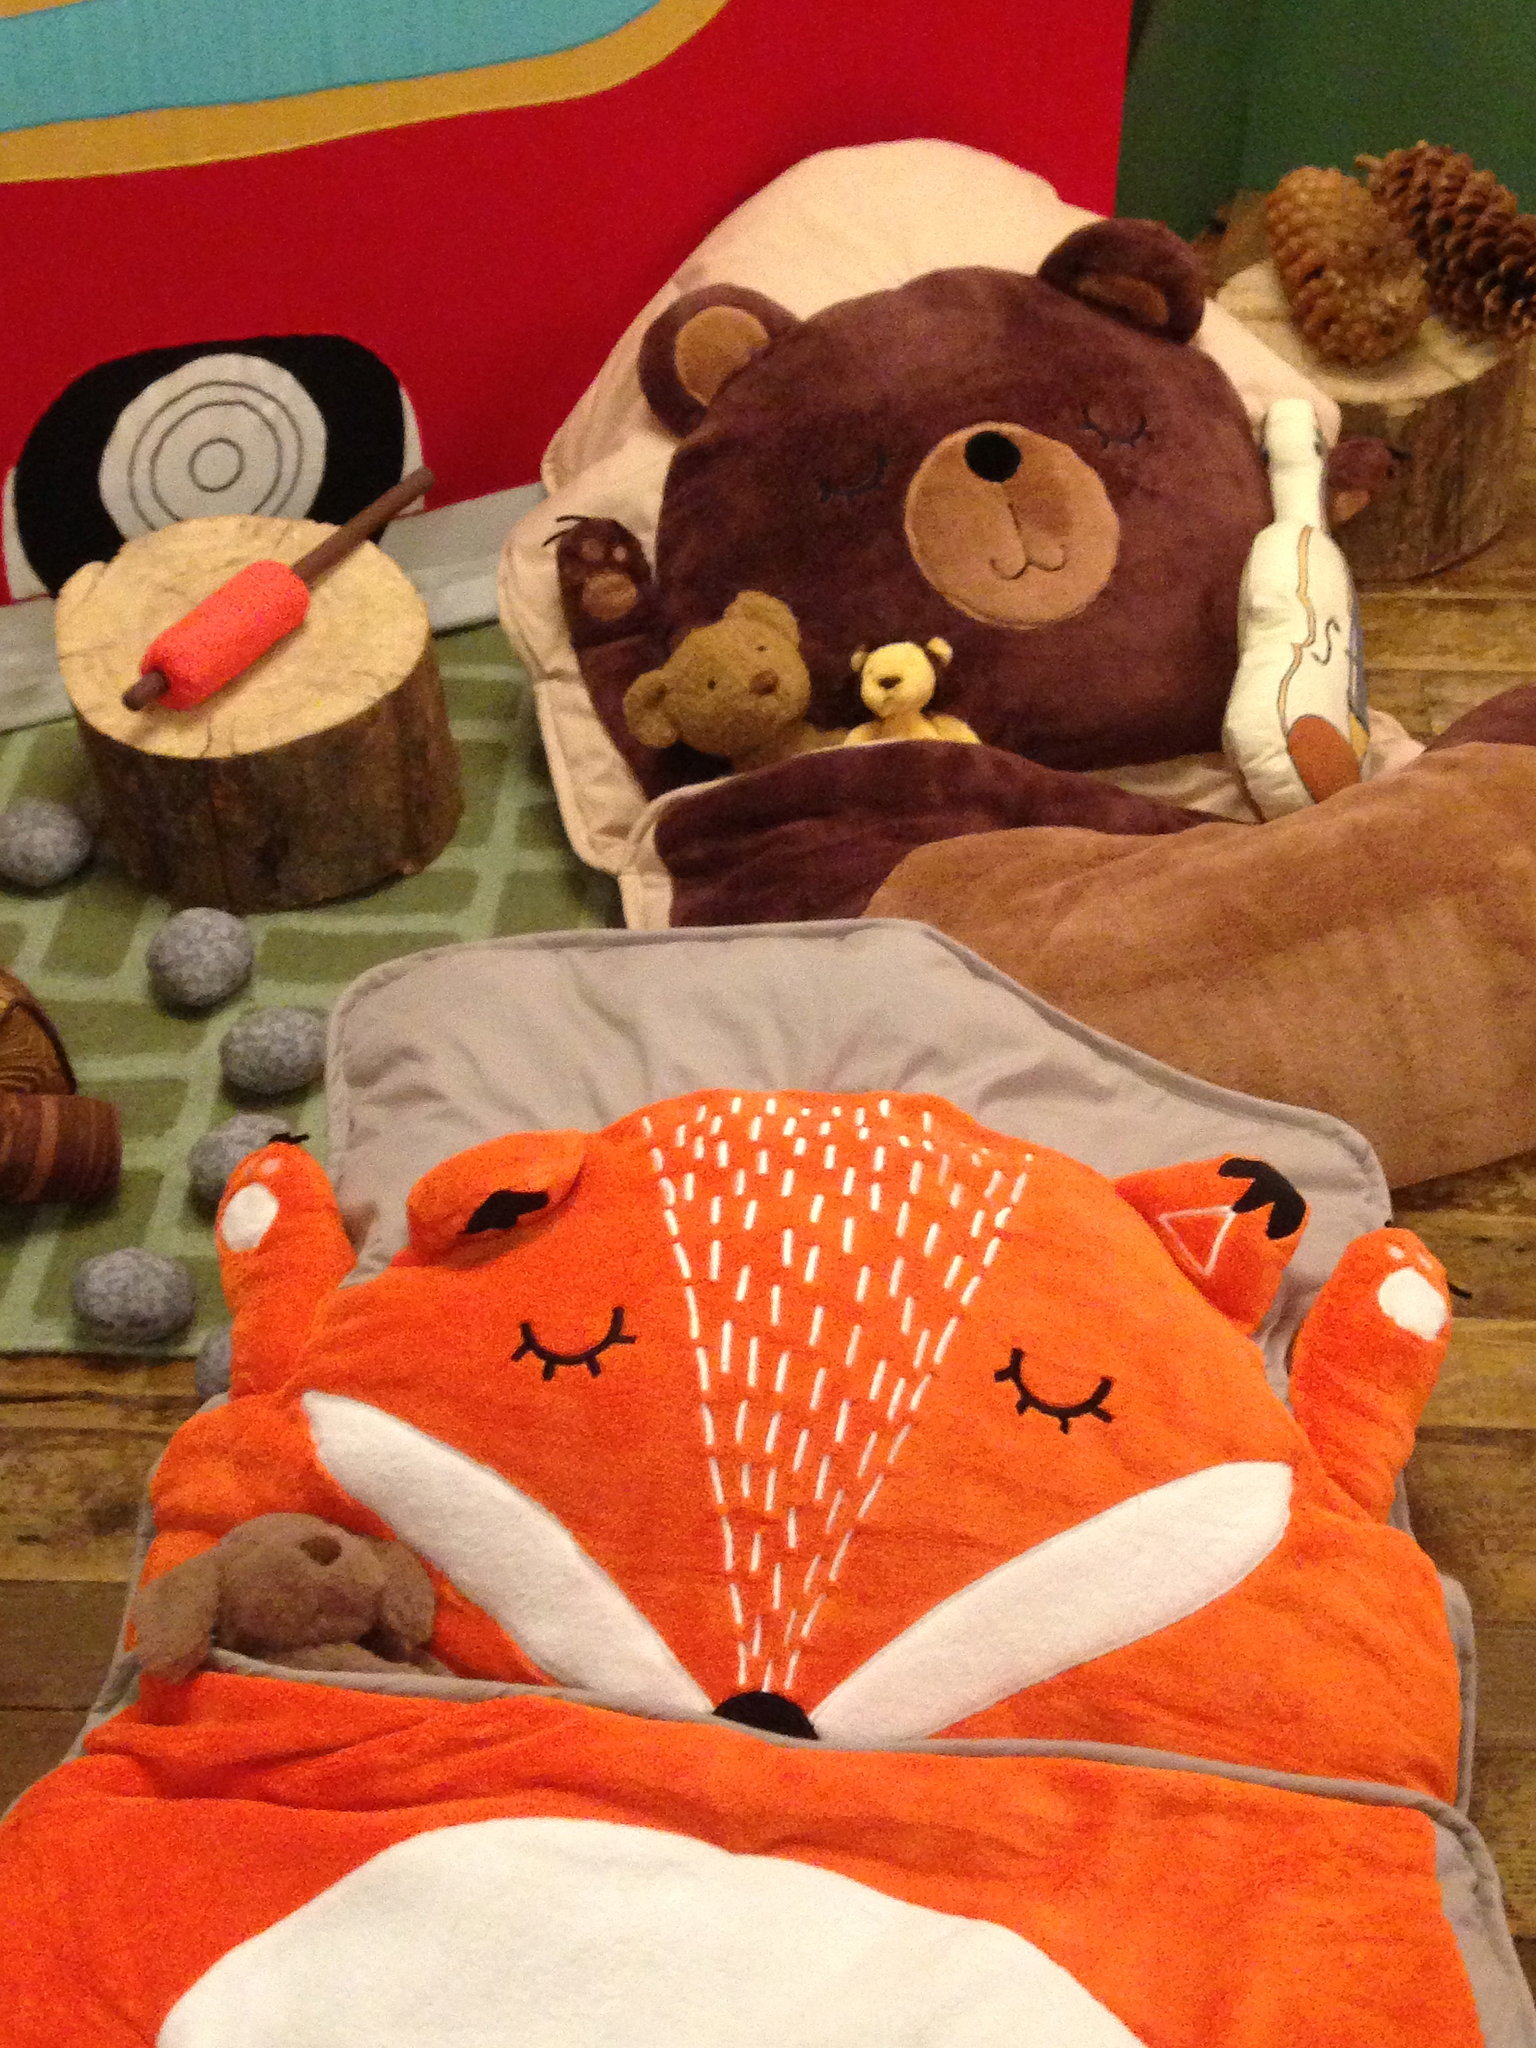 Cushy fox and teddy bear sleeping bags make slumber parties even more fun.